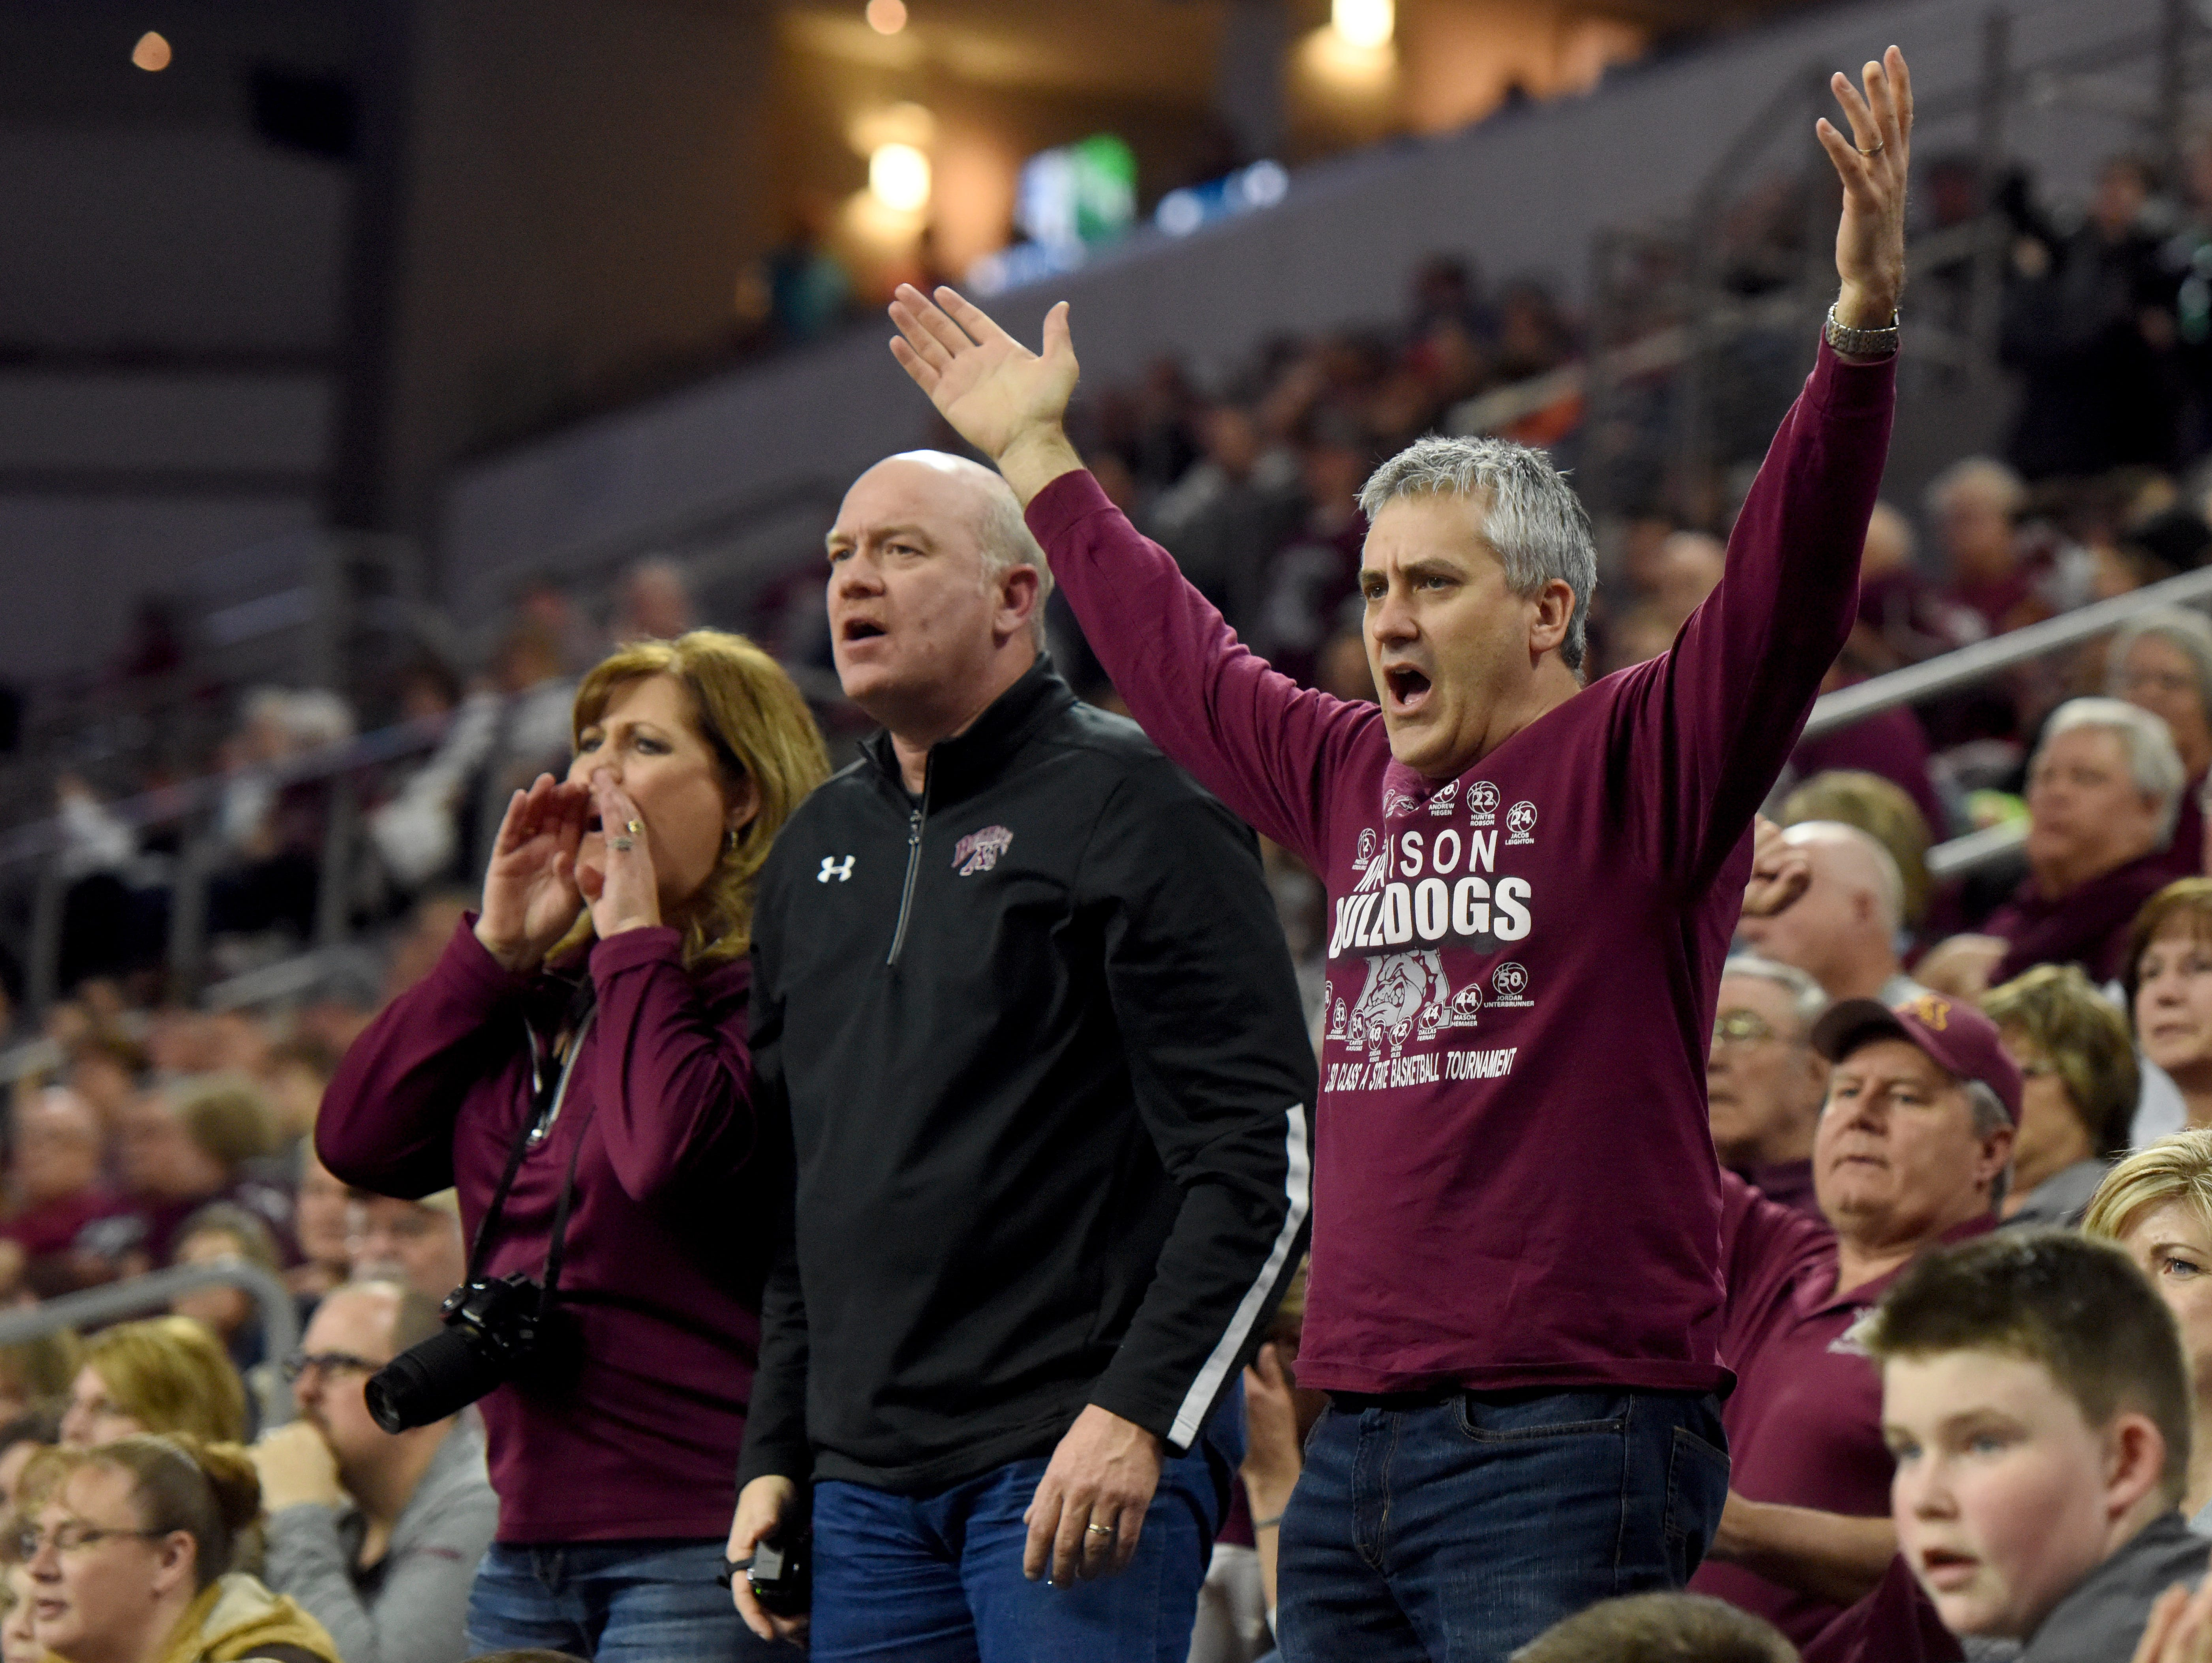 Madison fans react to a ref's call against Tea Area during the 2017 SDHSAA Class A boy's basketball championship at the Denny Sanford Premier Center on Saturday, March 18, 2017.